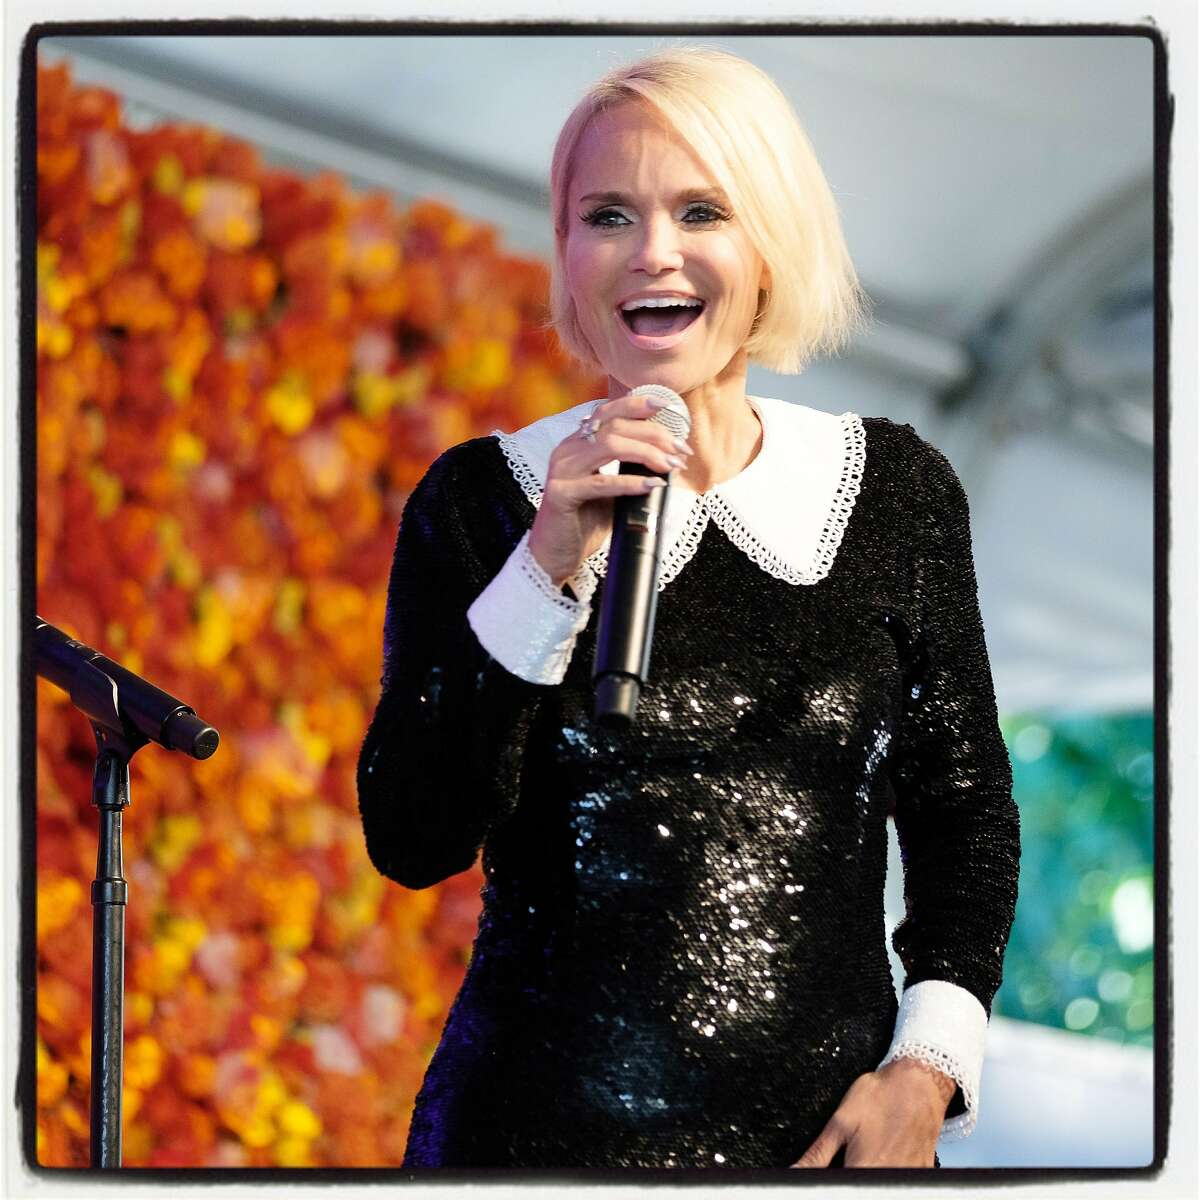 Kristin Chenoweth performs at Festival Napa Valley's Arts for All gala. July 22, 2018.